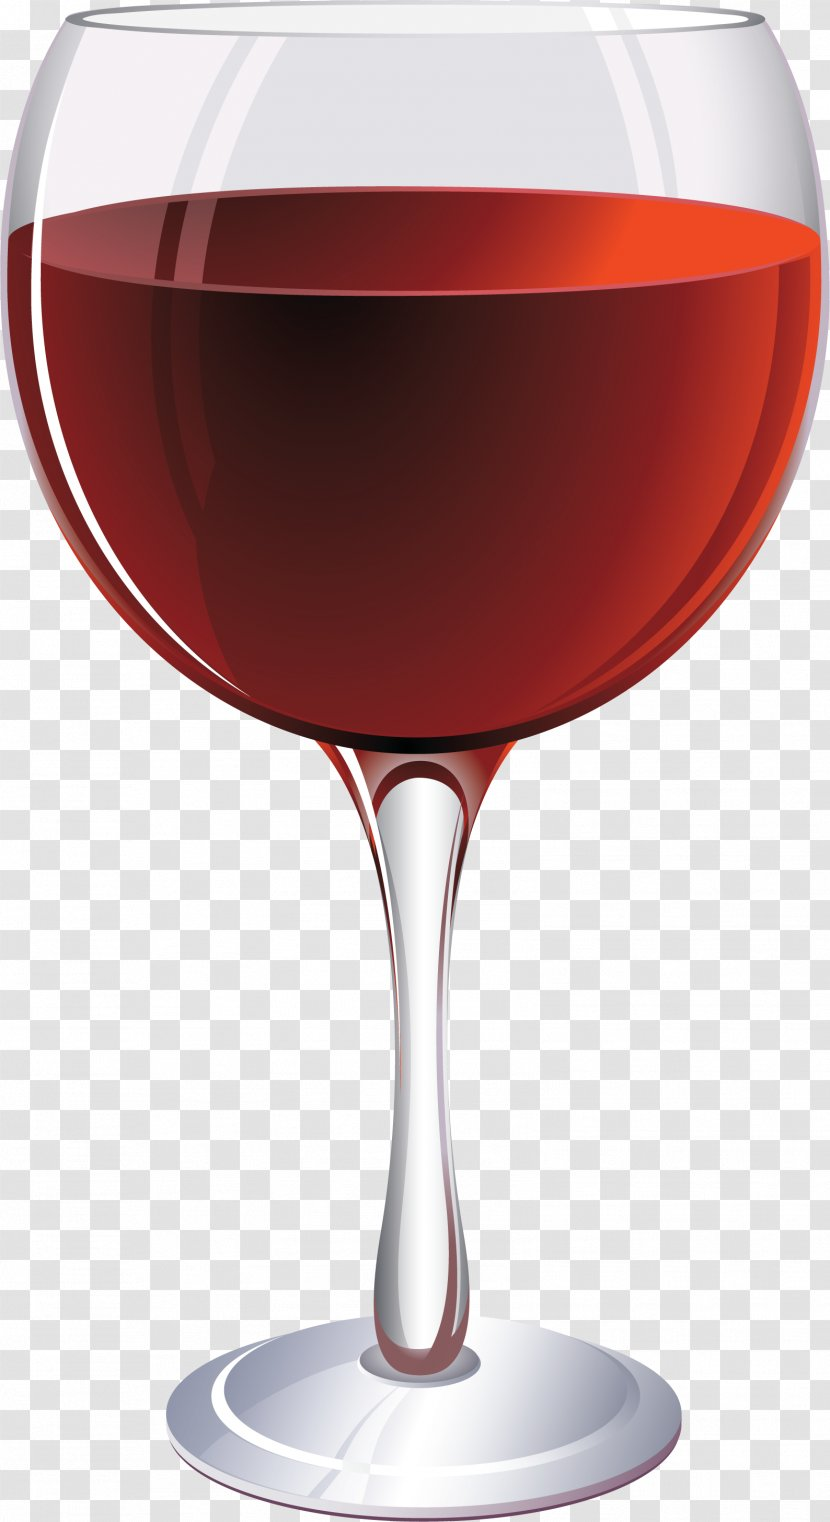 Red Wine Cocktail Champagne Clip Art Glass Image Transparent Png